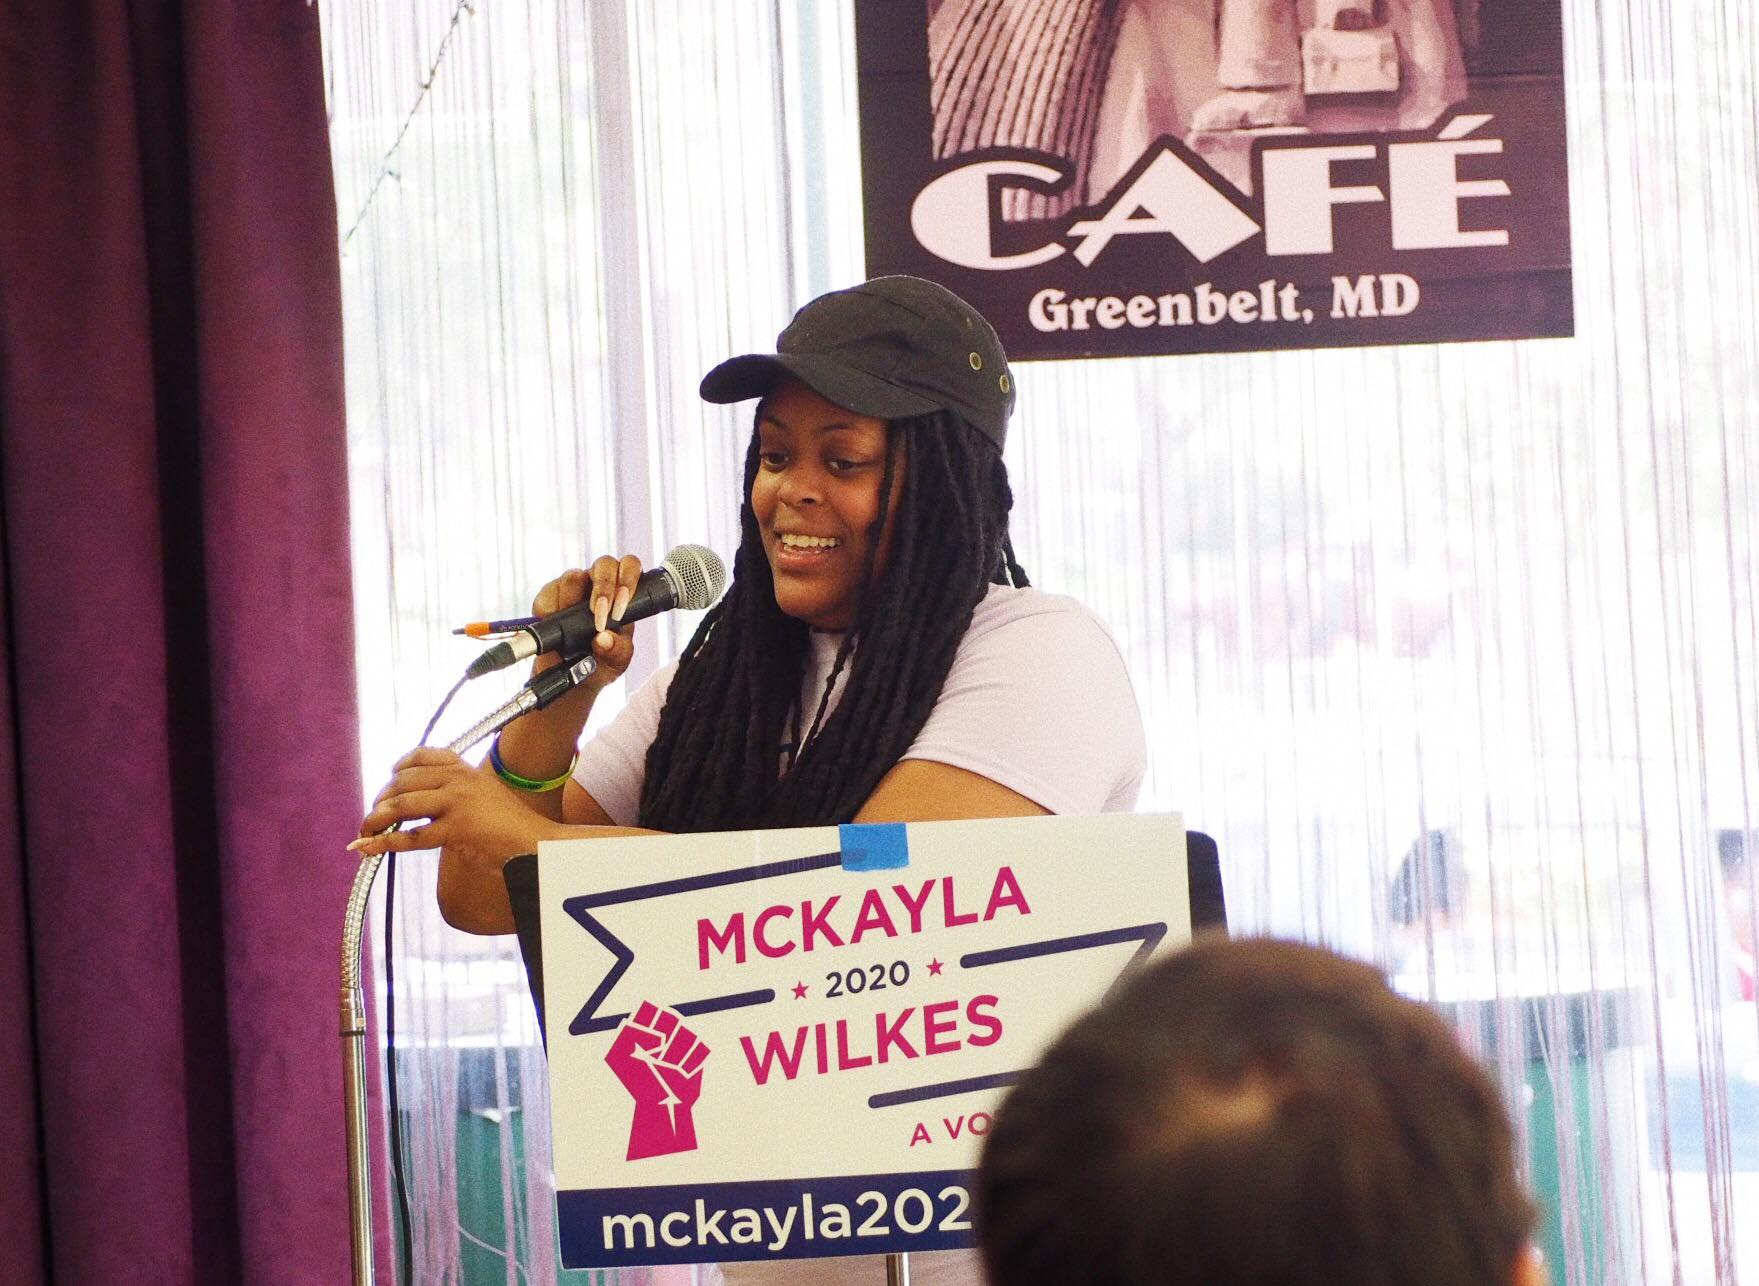 Mckayla speaking at the New Deal Cafe in Greenbelt, Maryland